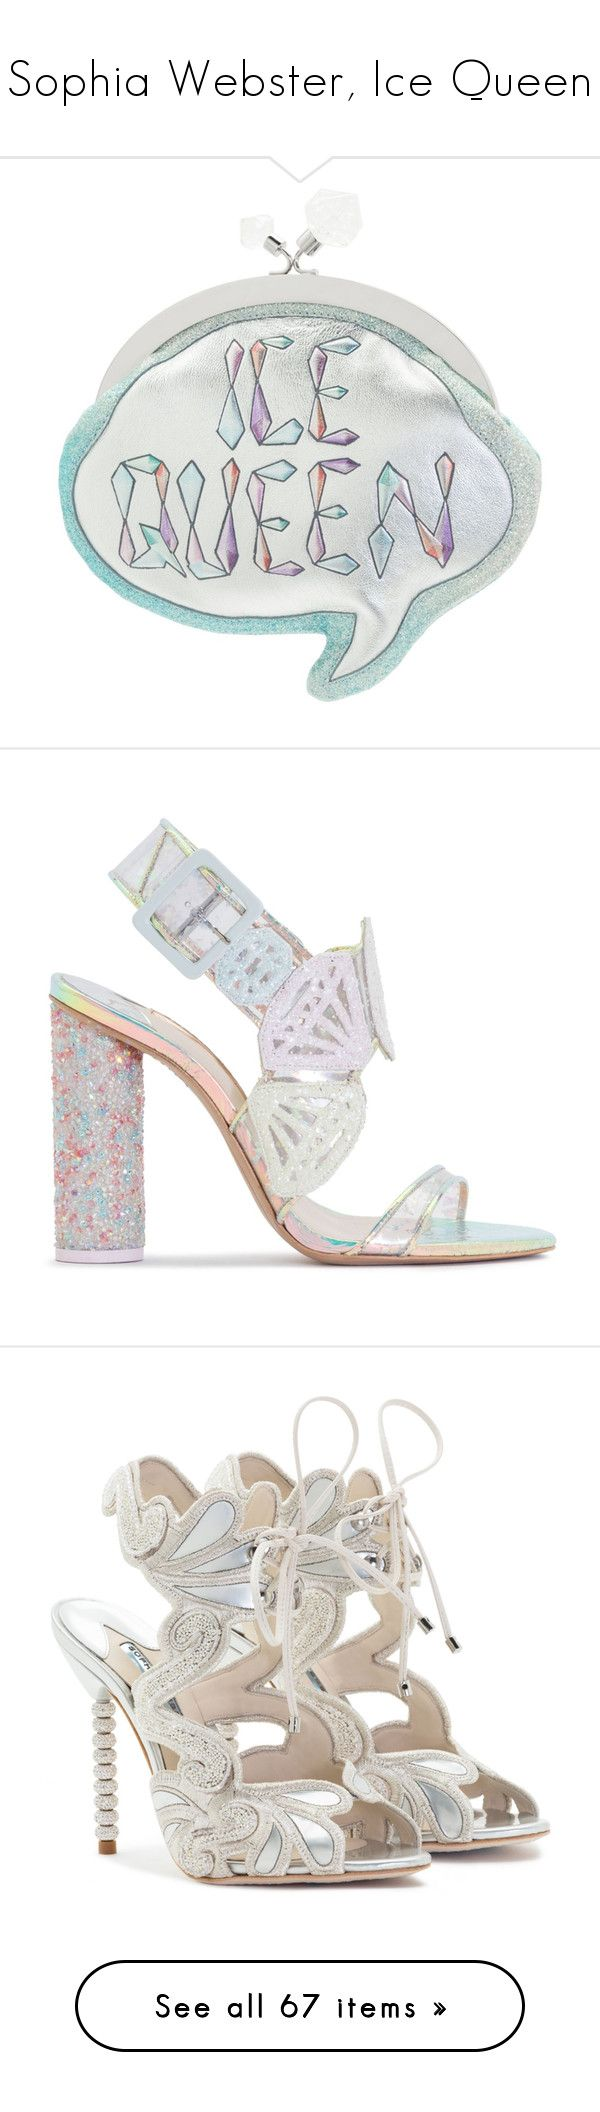 """""""Sophia Webster, Ice Queen"""" by haikuandkysses ❤ liked on Polyvore featuring shoes, sandals, crystal embellished sandals, glitter shoes, bright colored shoes, polish shoes, gem shoes, ivory sandals, beaded sandals and embroidered shoes"""